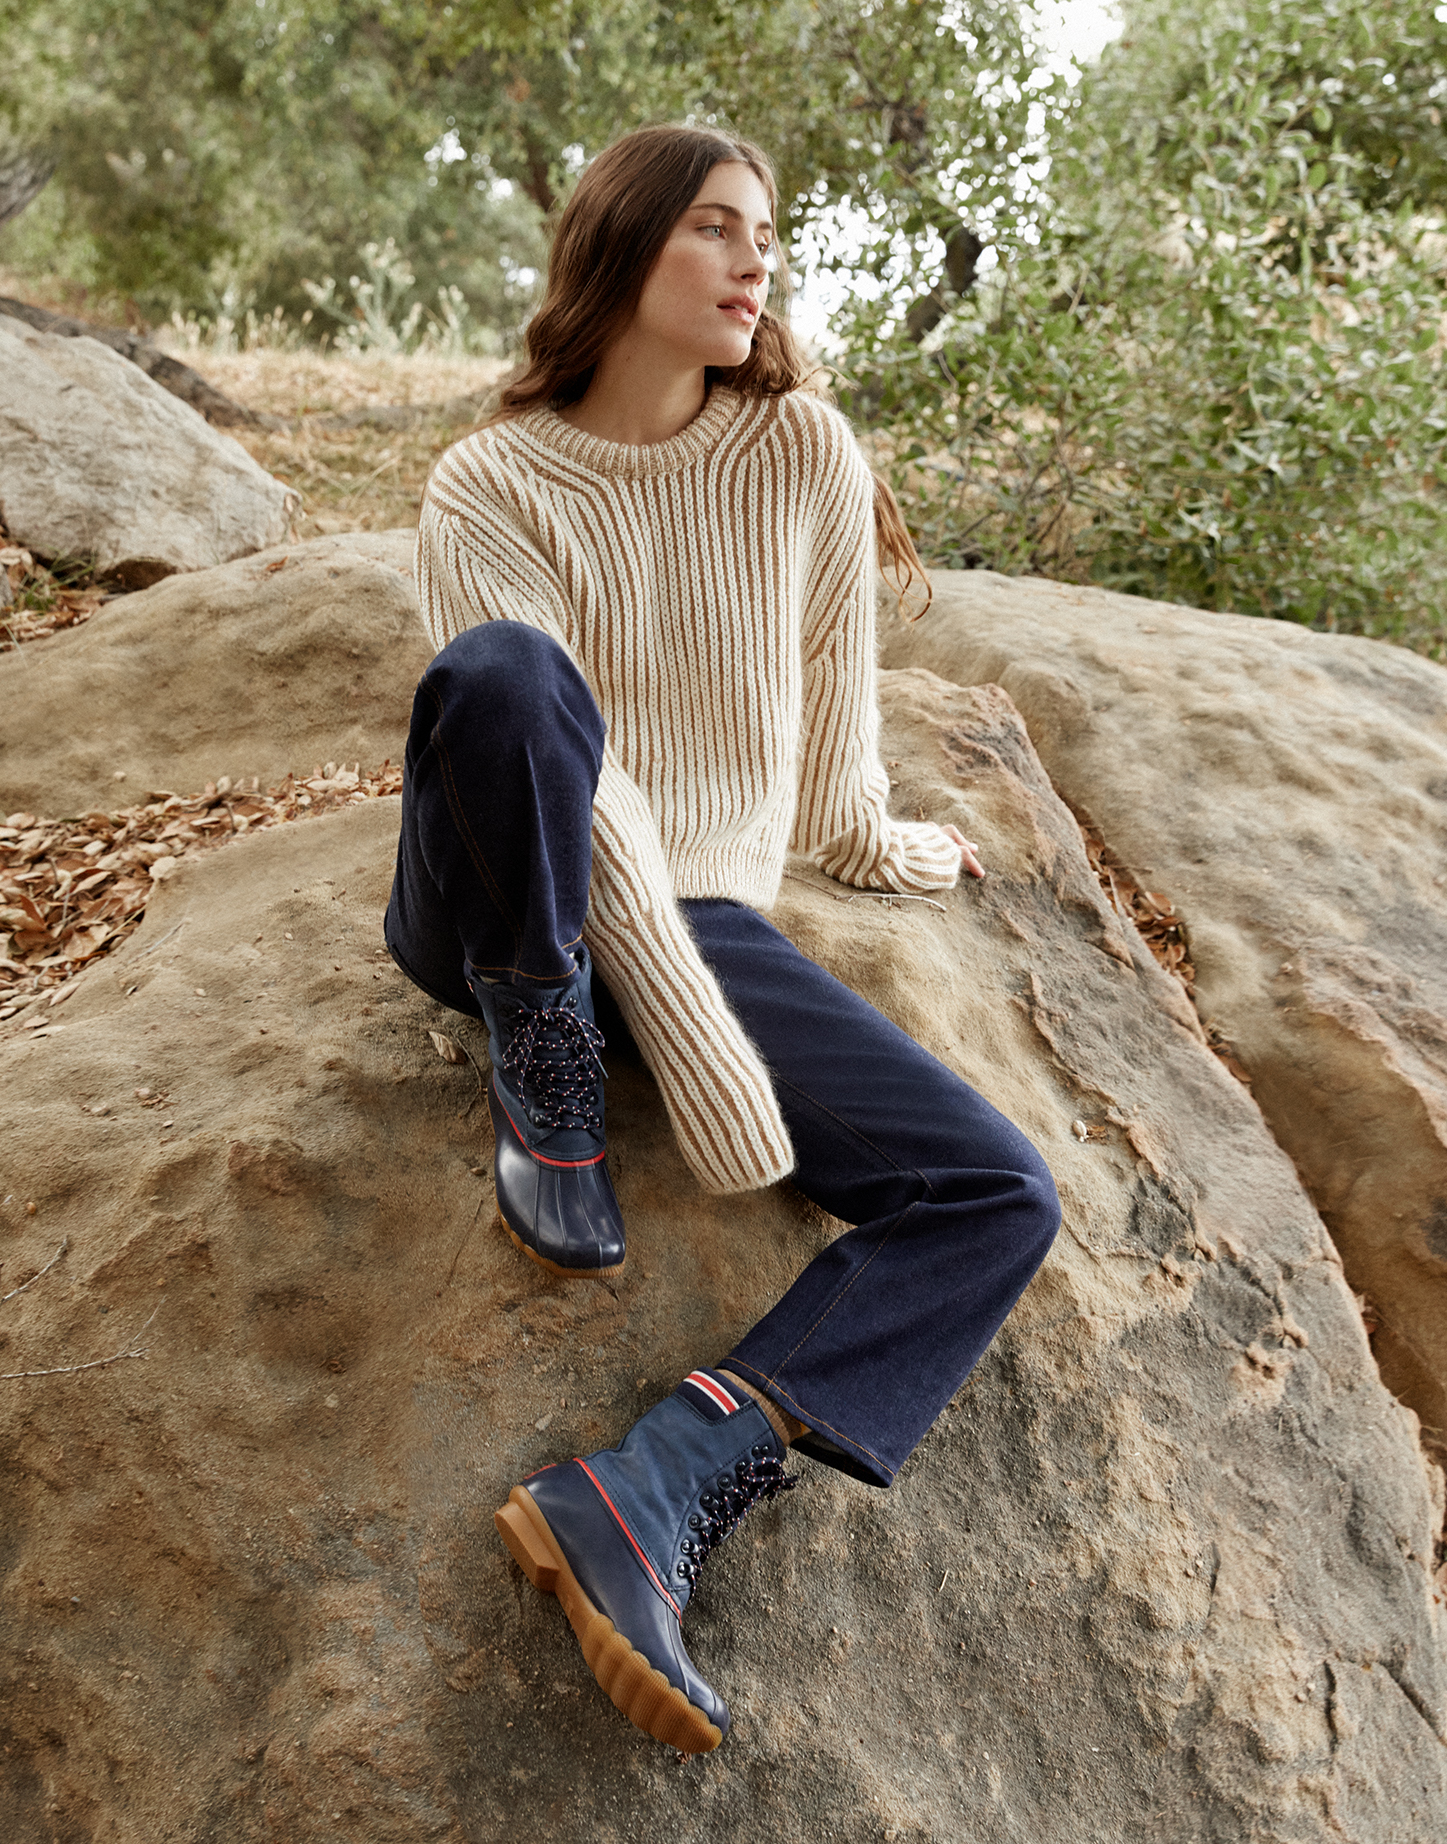 Woman wearing Goop & Sperry boots while sitting on a rock.